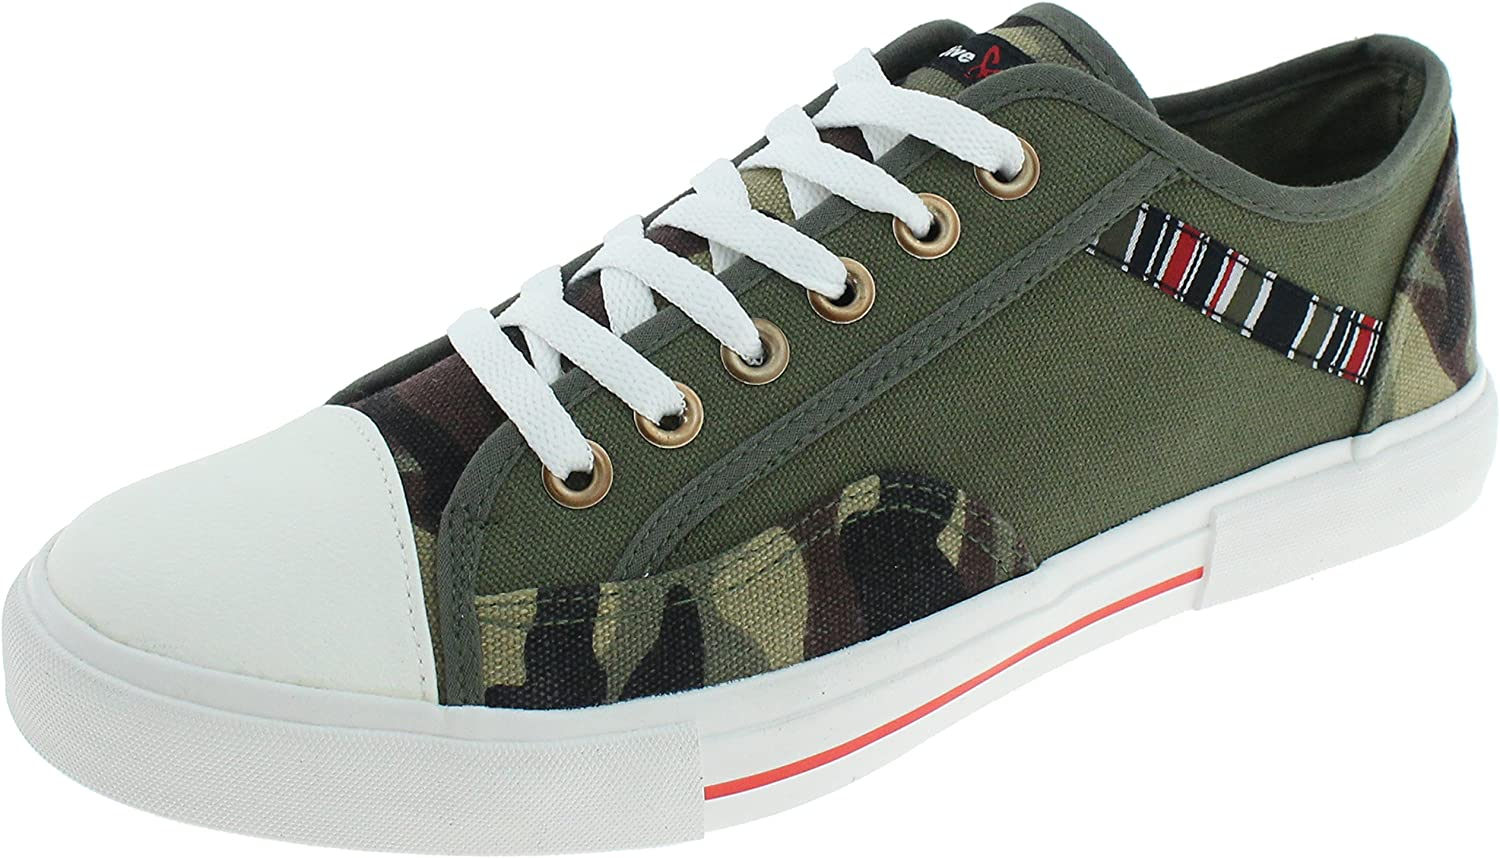 Triple Five Soul Men's Brooklyn Low Top Sneakers Olive 9